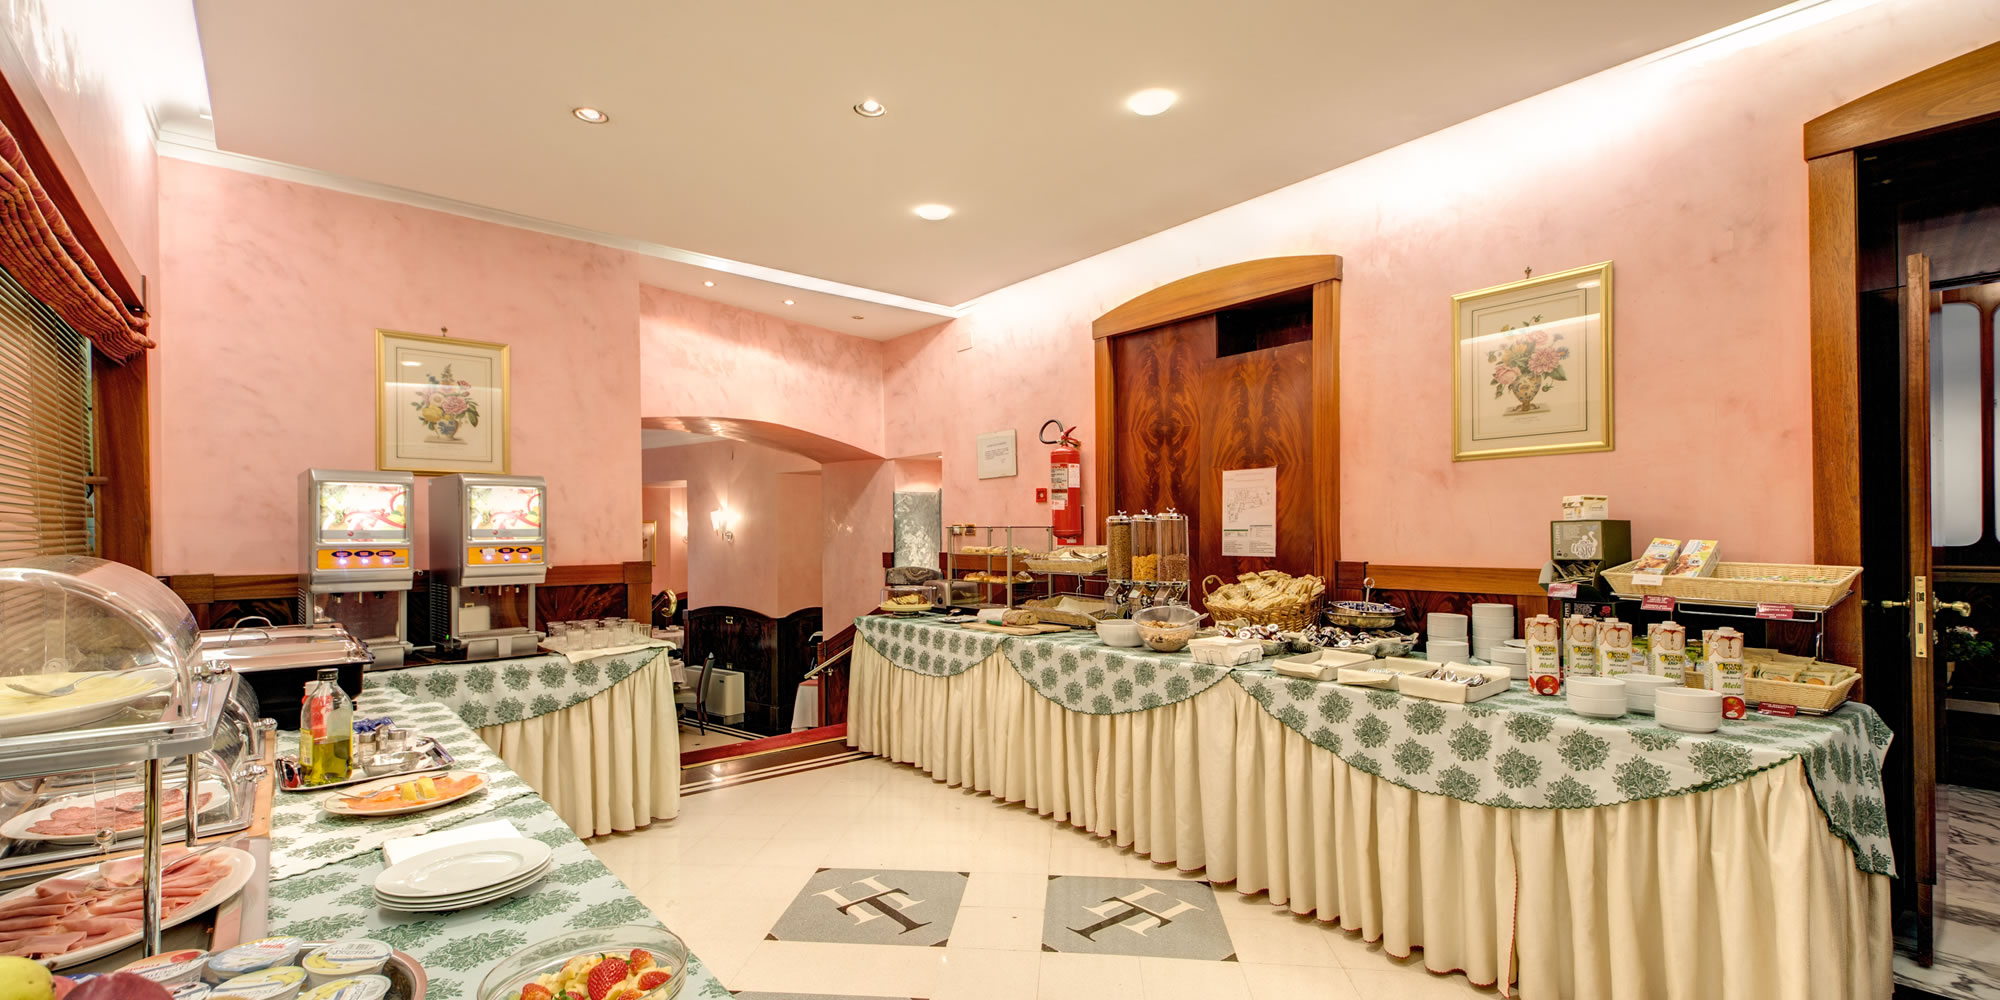 Hotel Tiziano Rome - Food Facilities